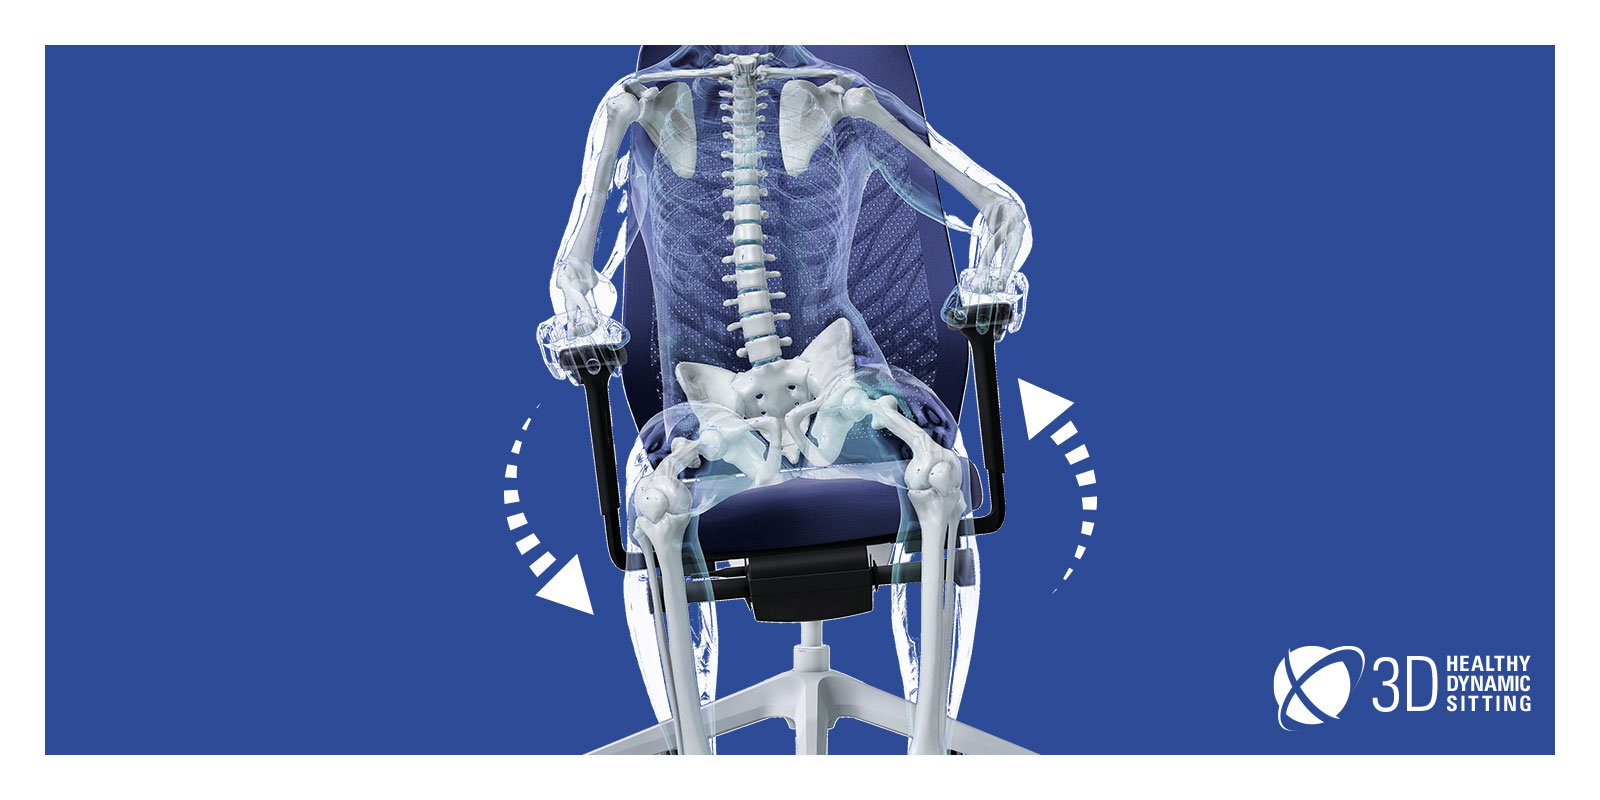 A transparent figure, whose skeleton is visible, sitting on a JOYCE swivel chair with black mesh backrest, blue seat cover, black T-armrests and plastic parts (including base, column) as well as FlexTech in white. The transparent figure is shifting its weight to the right, causing the chair to adapt to its movements. Around the chair, two white arrows form a circle, indicating the mobility of the chair. This active sitting is promoted by the FlexTech function.